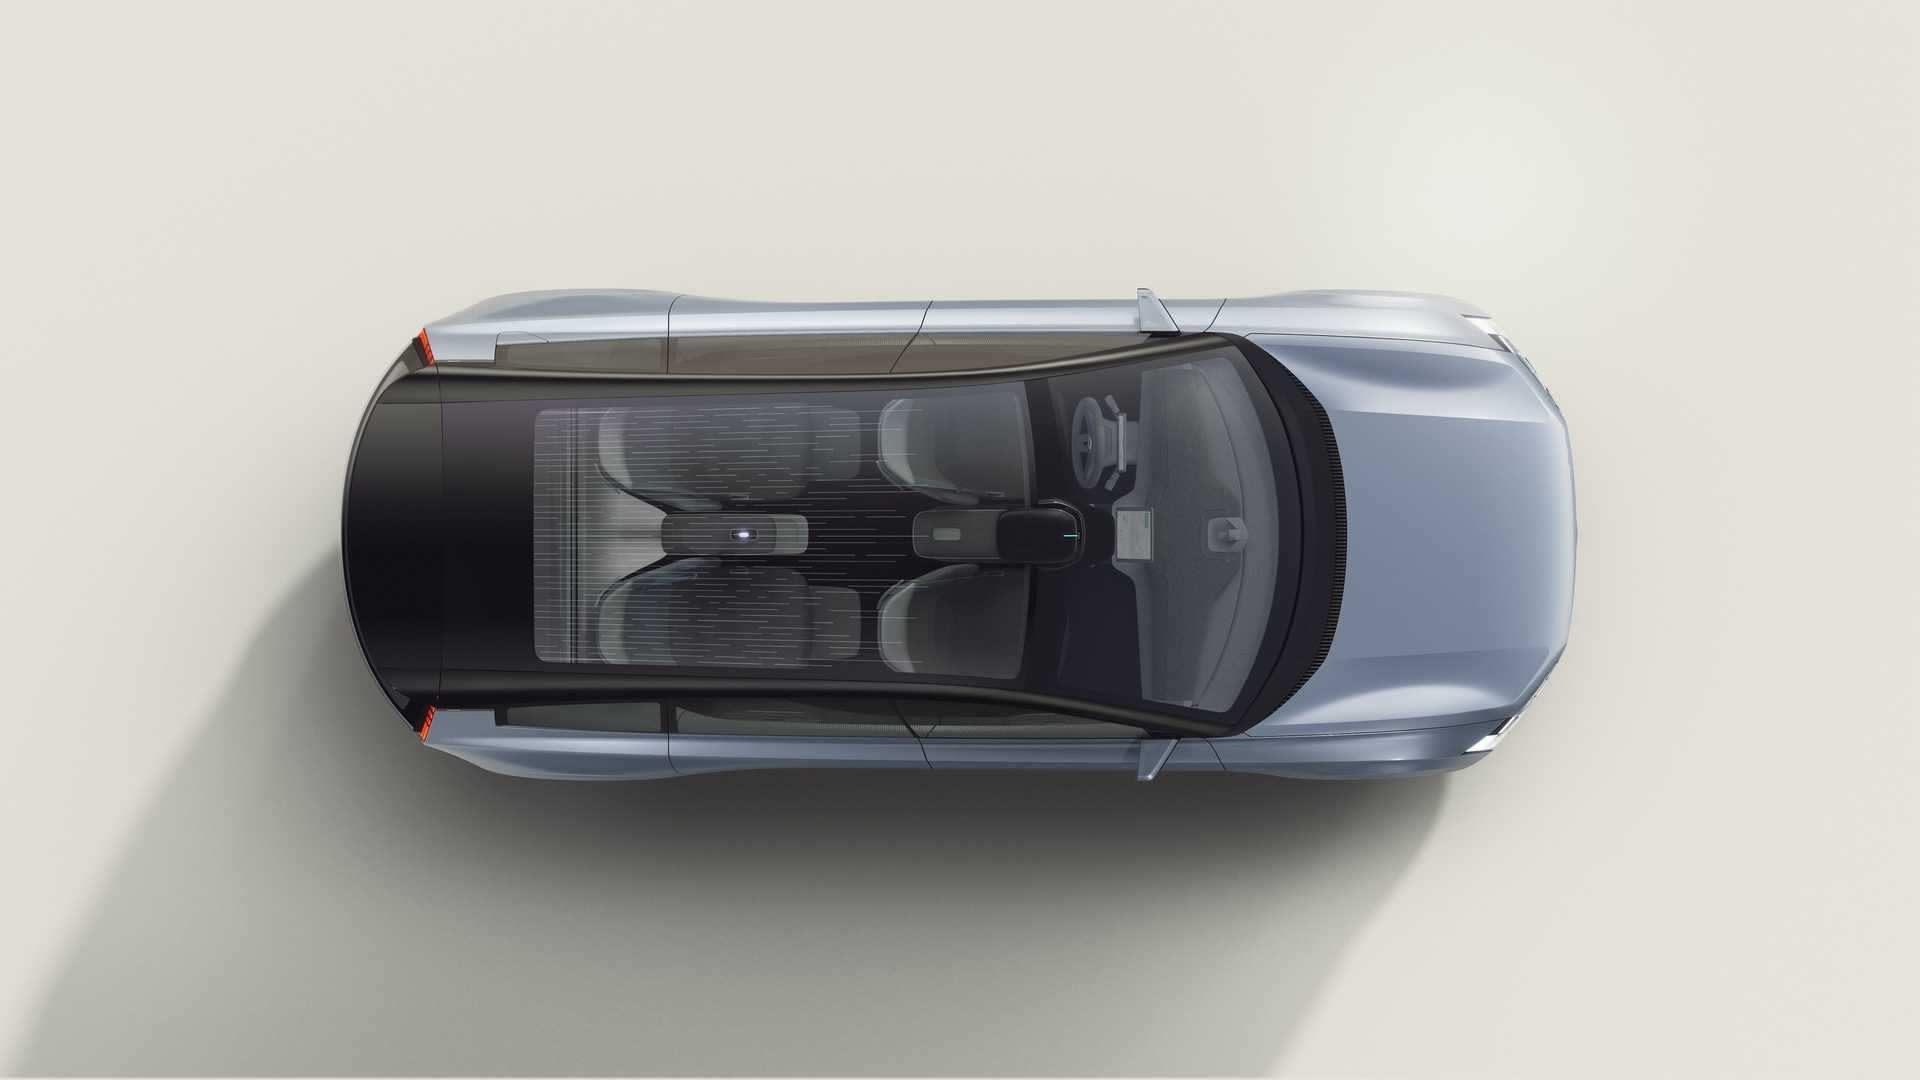 volvo-concept-recharge-top-view2.jpeg